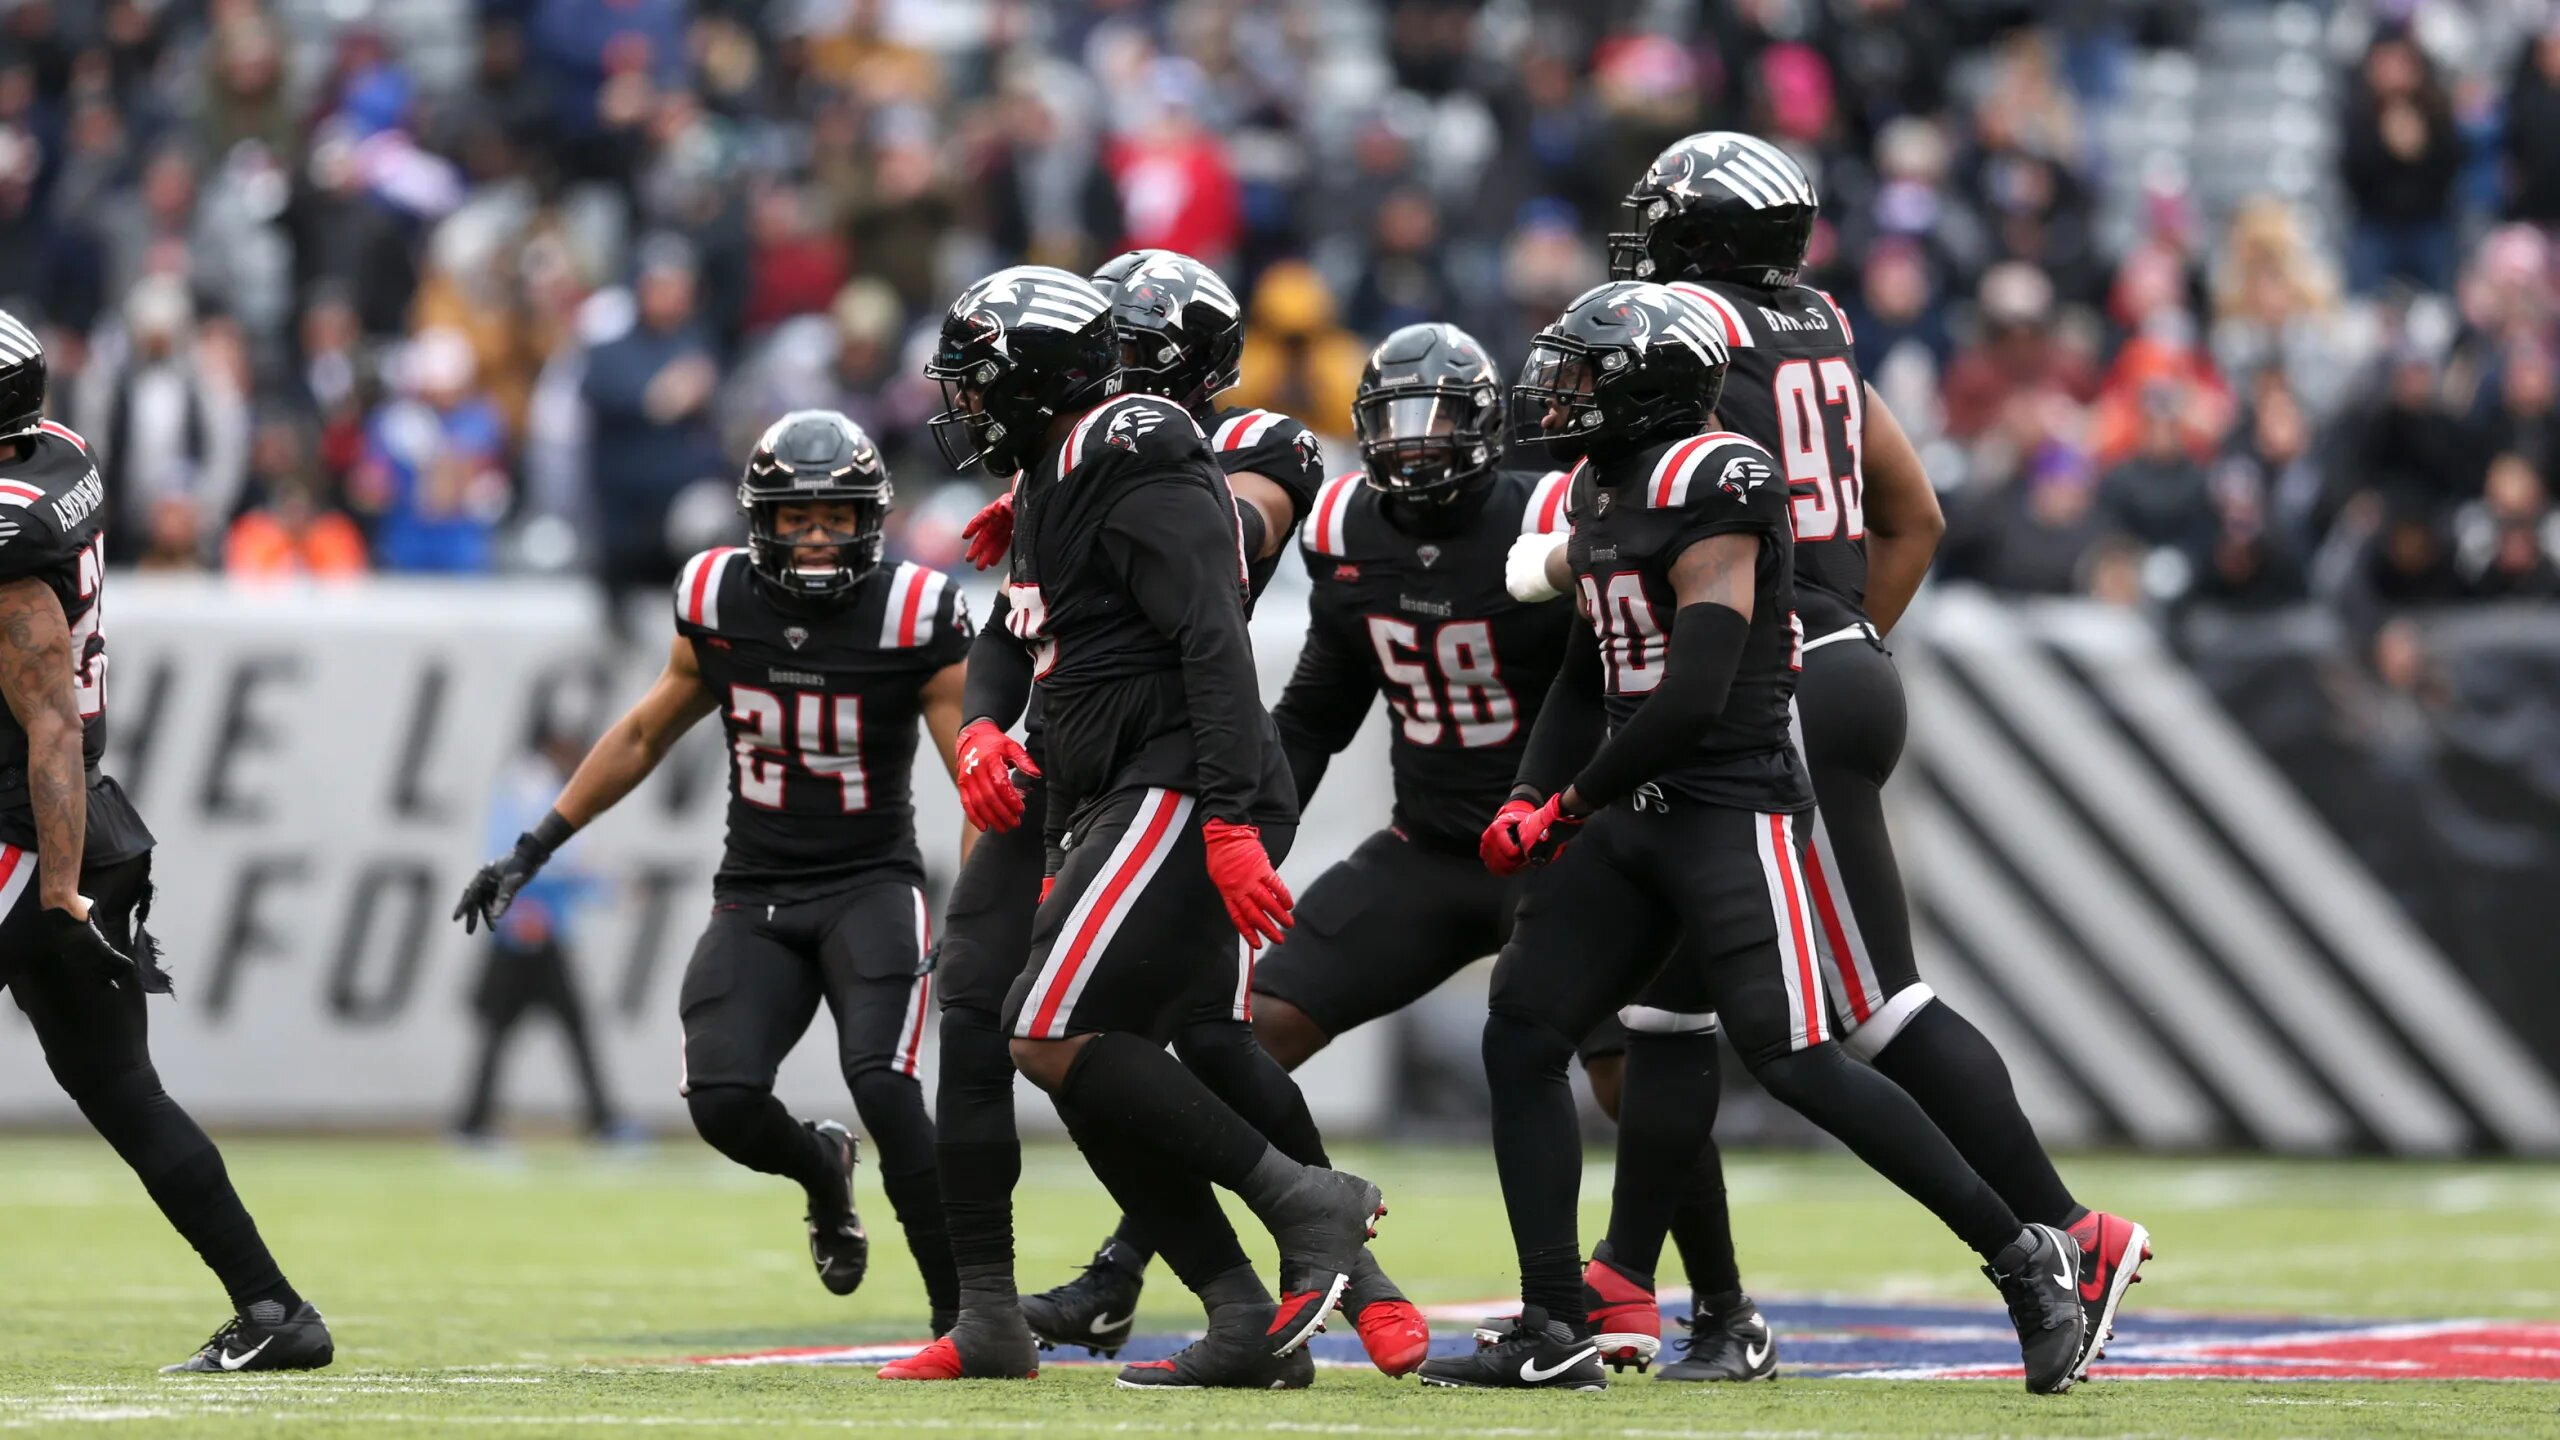 New York Guardians defense celebrates after a play in their win over the Los Angeles Wildcats